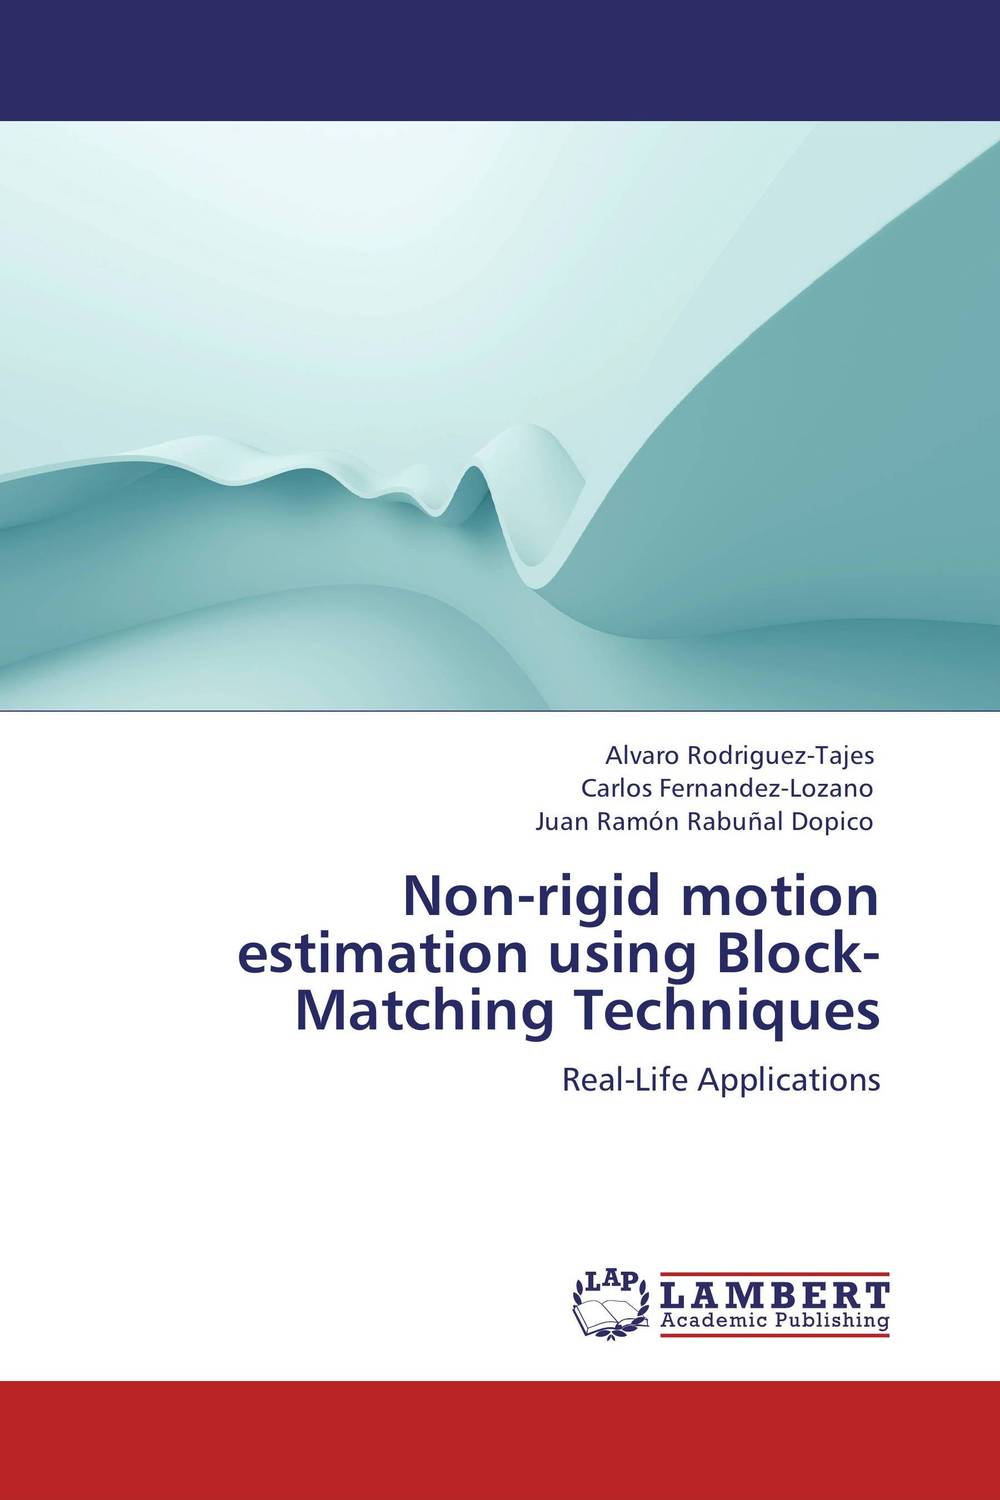 Non-rigid motion estimation using Block-Matching Techniques